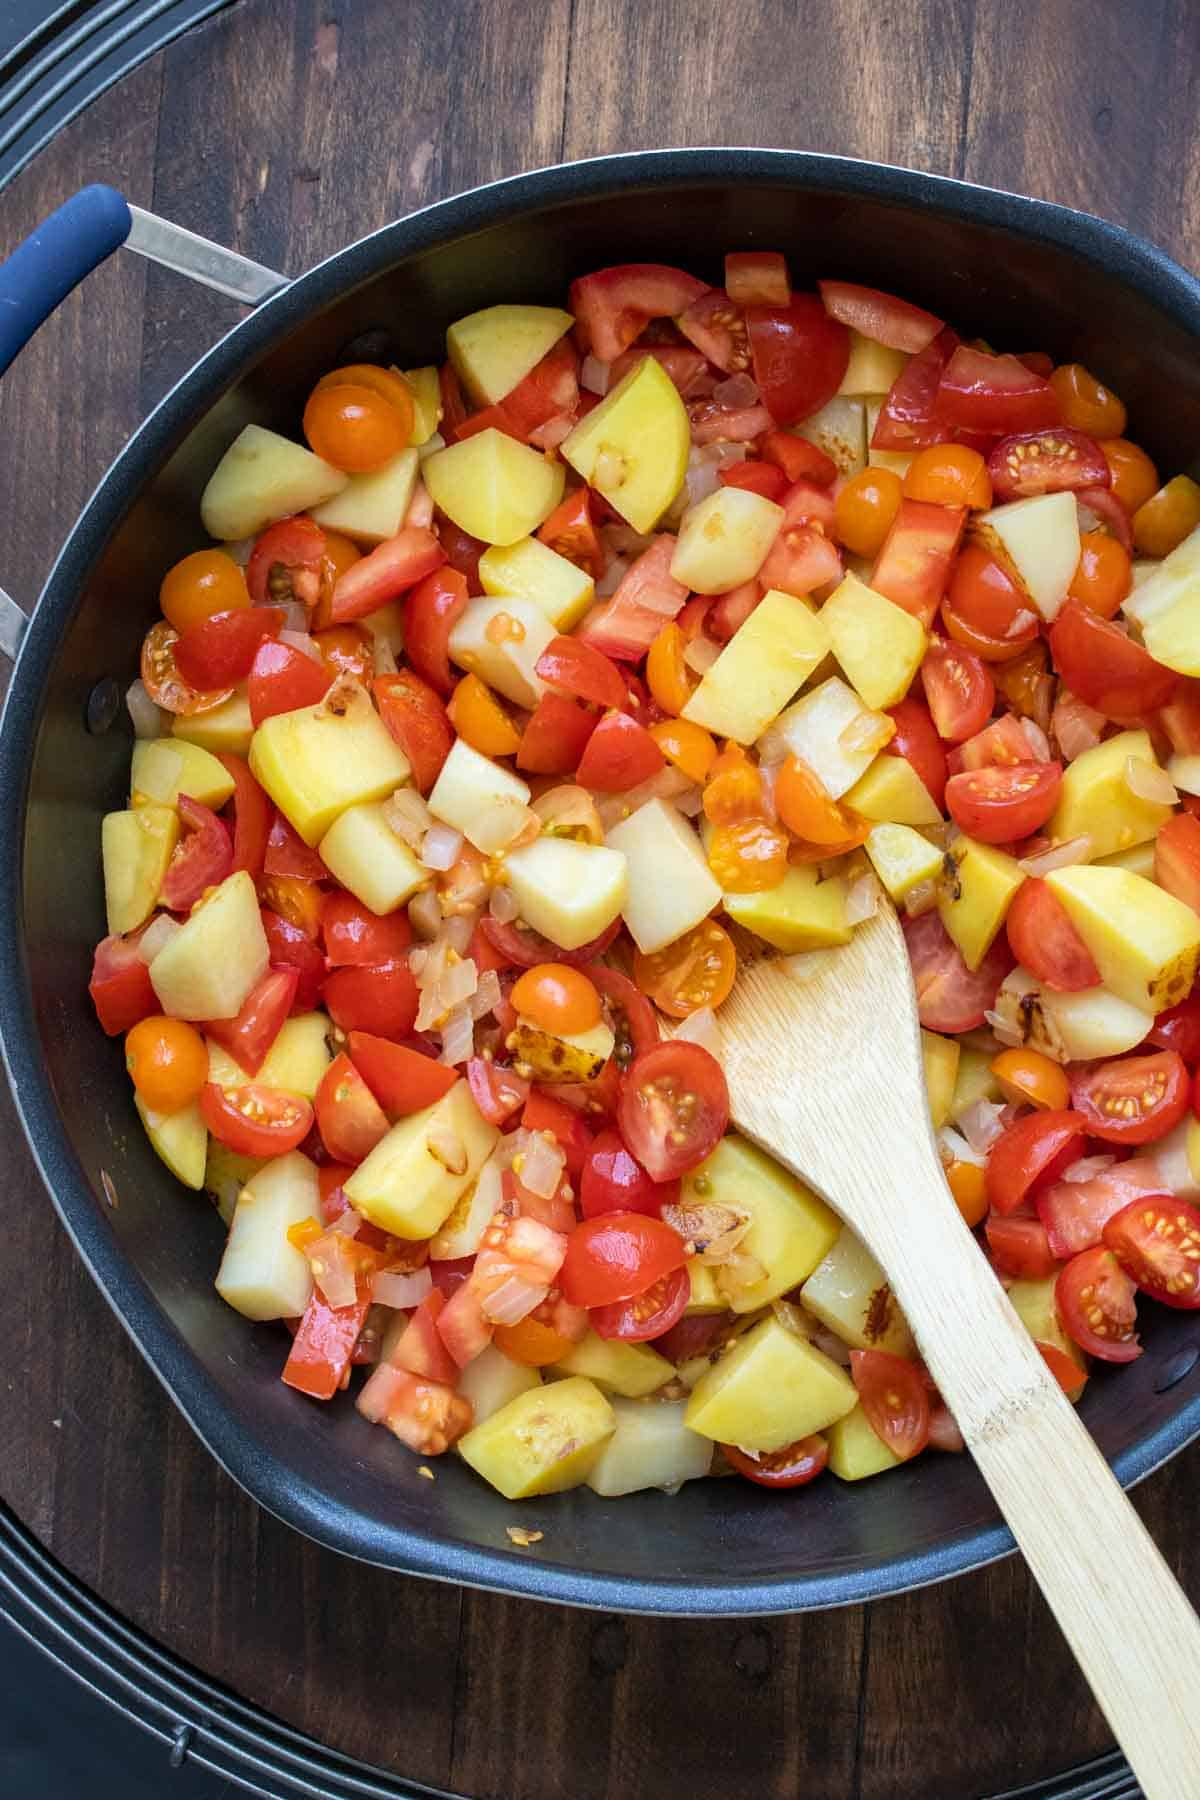 Potatoes and tomatoes being cooked in a pan